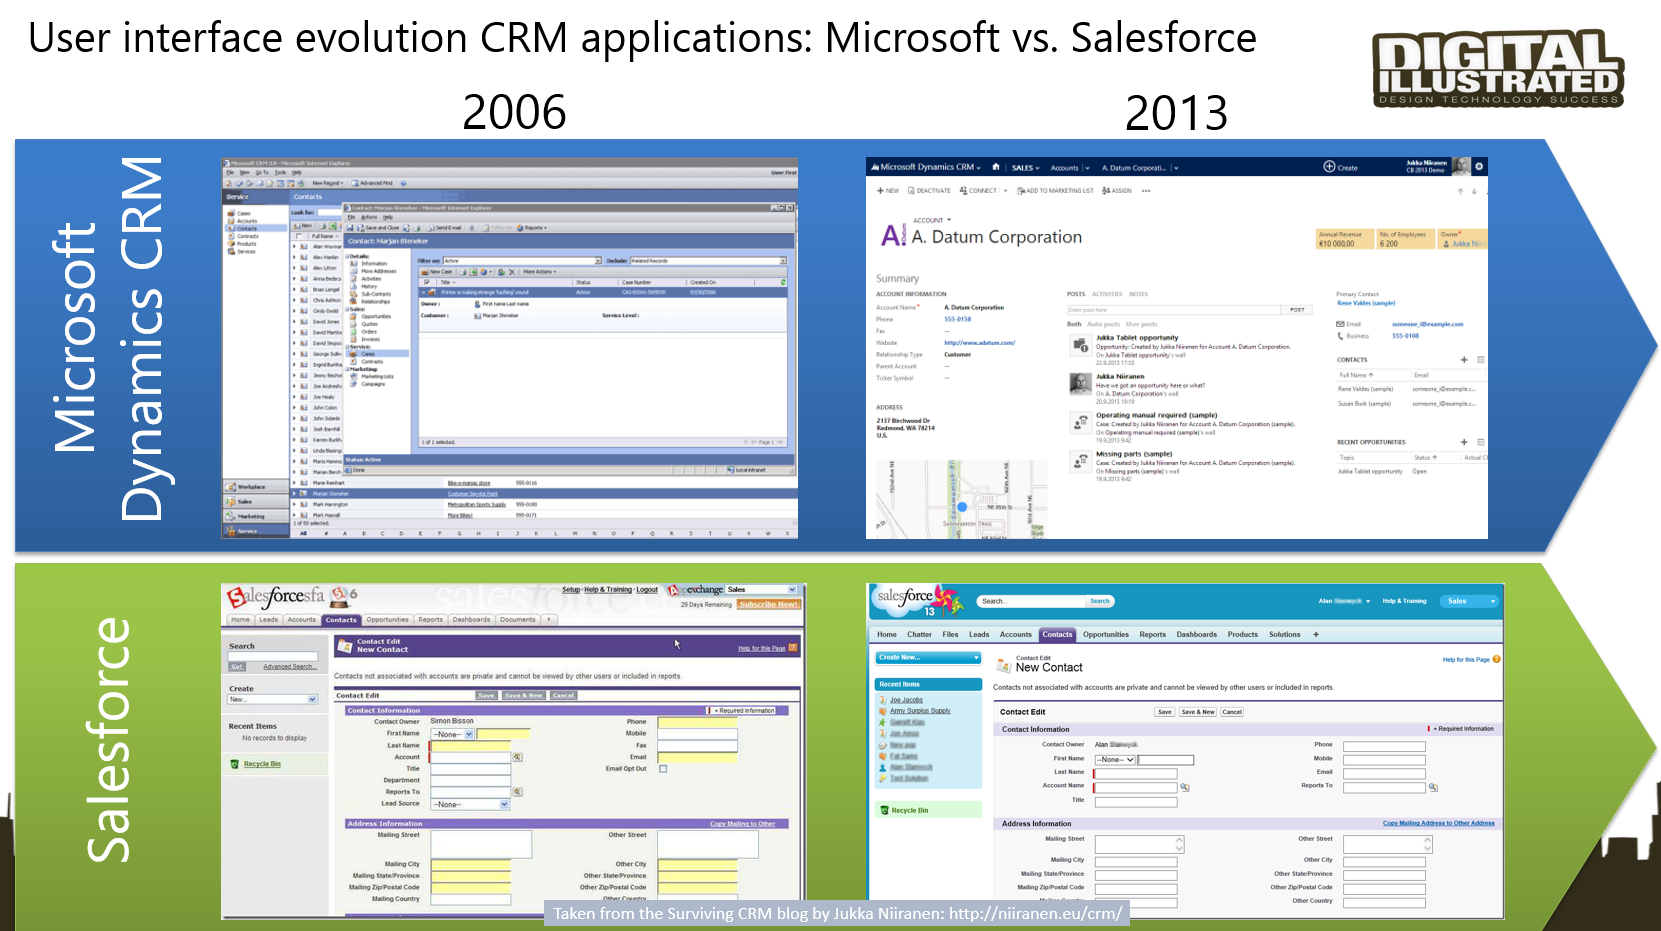 Dynamics crm platform evolution part 1 the history crmplatformevolution2small xflitez Images